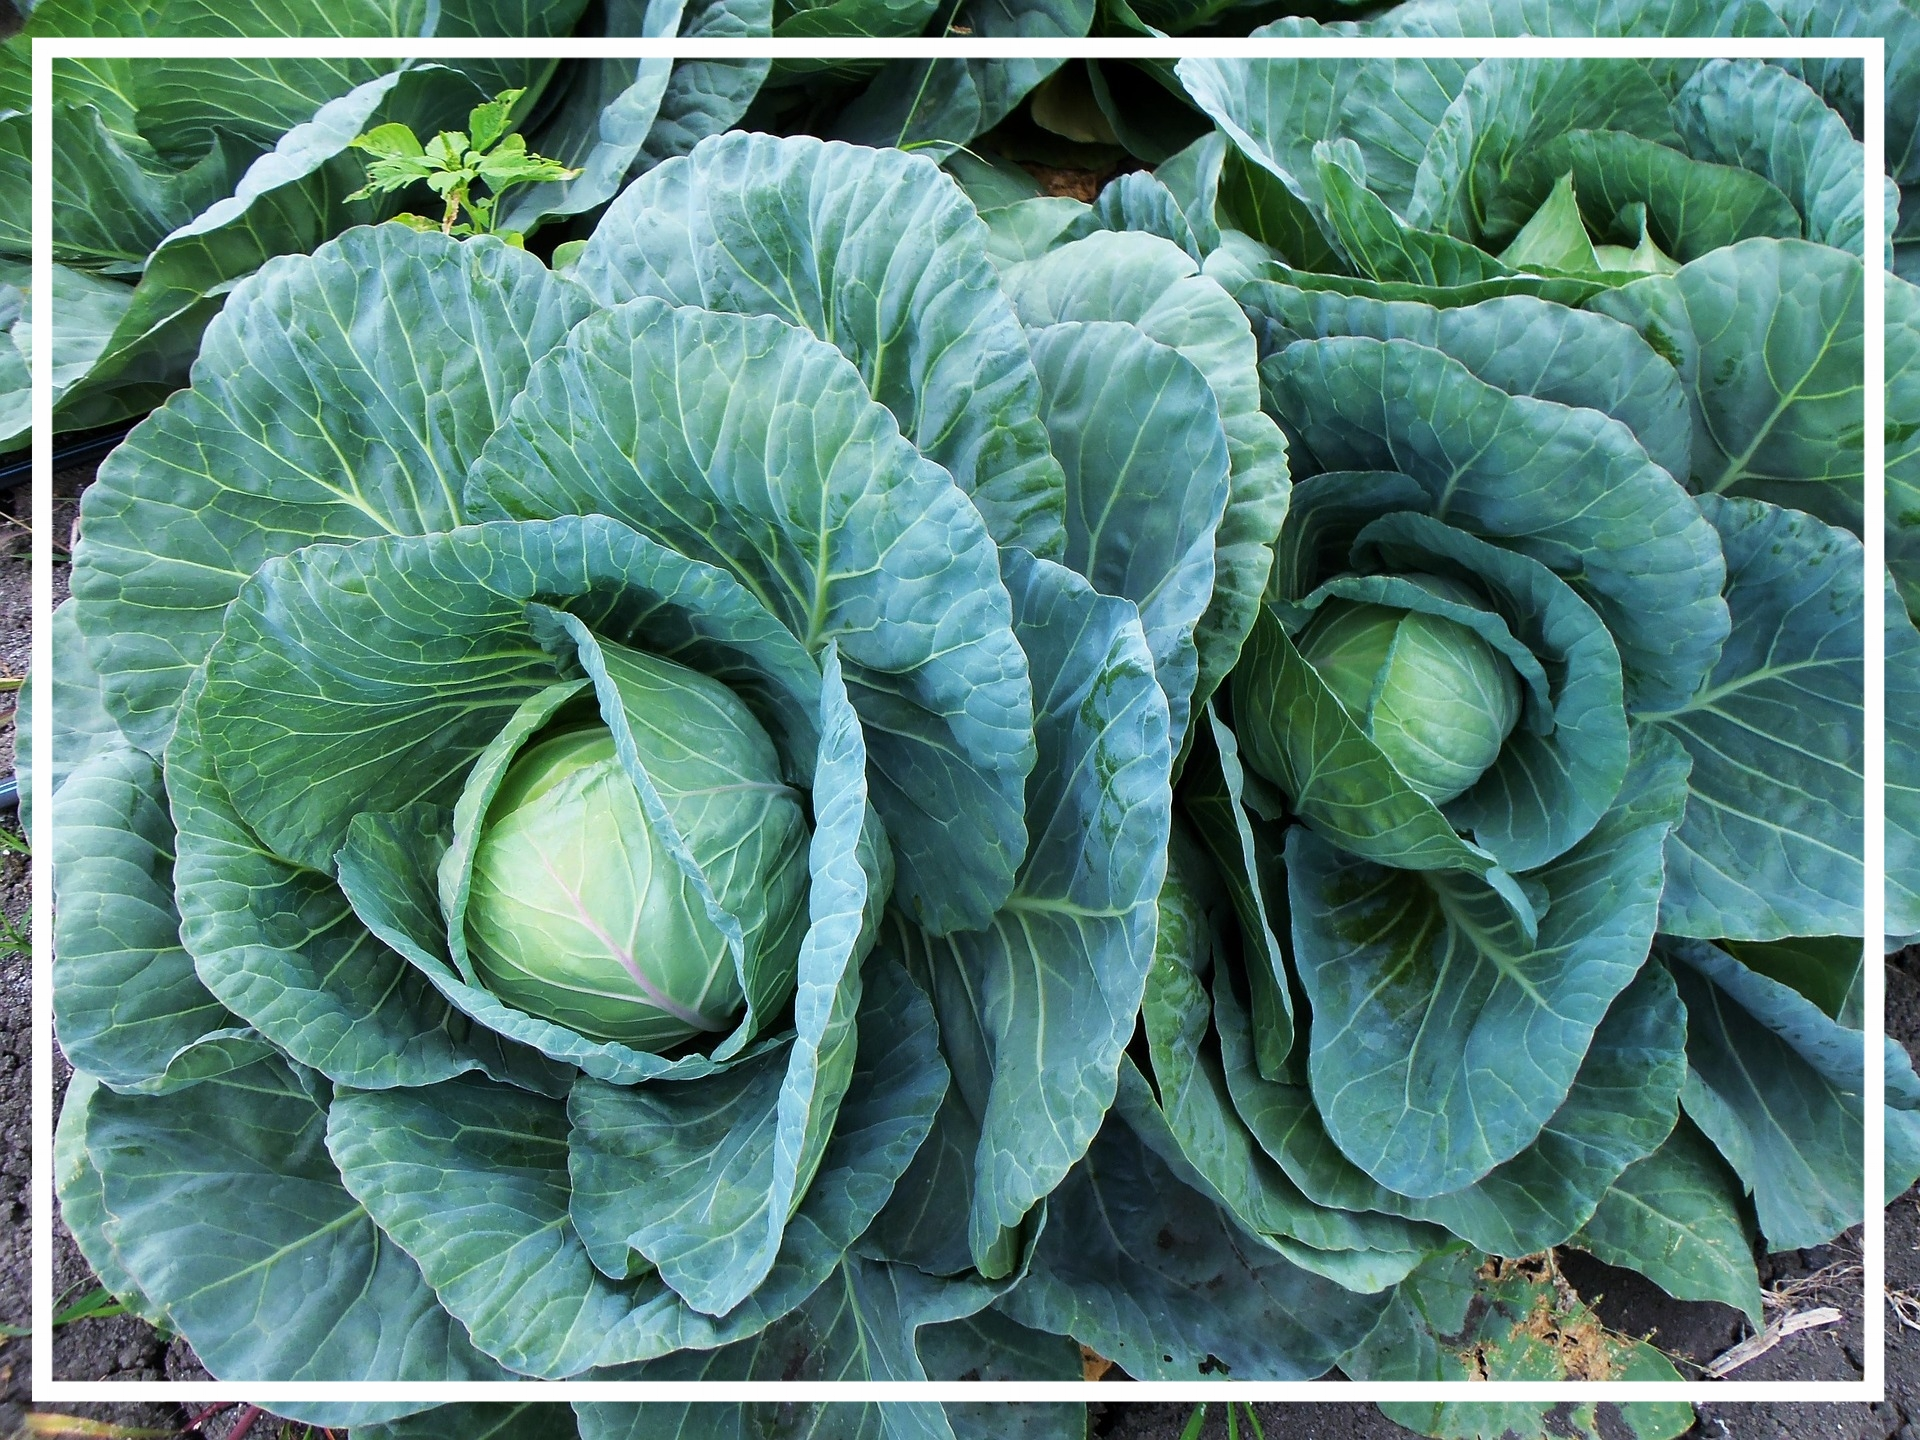 Worms tend to avoid plants in the brassica family.